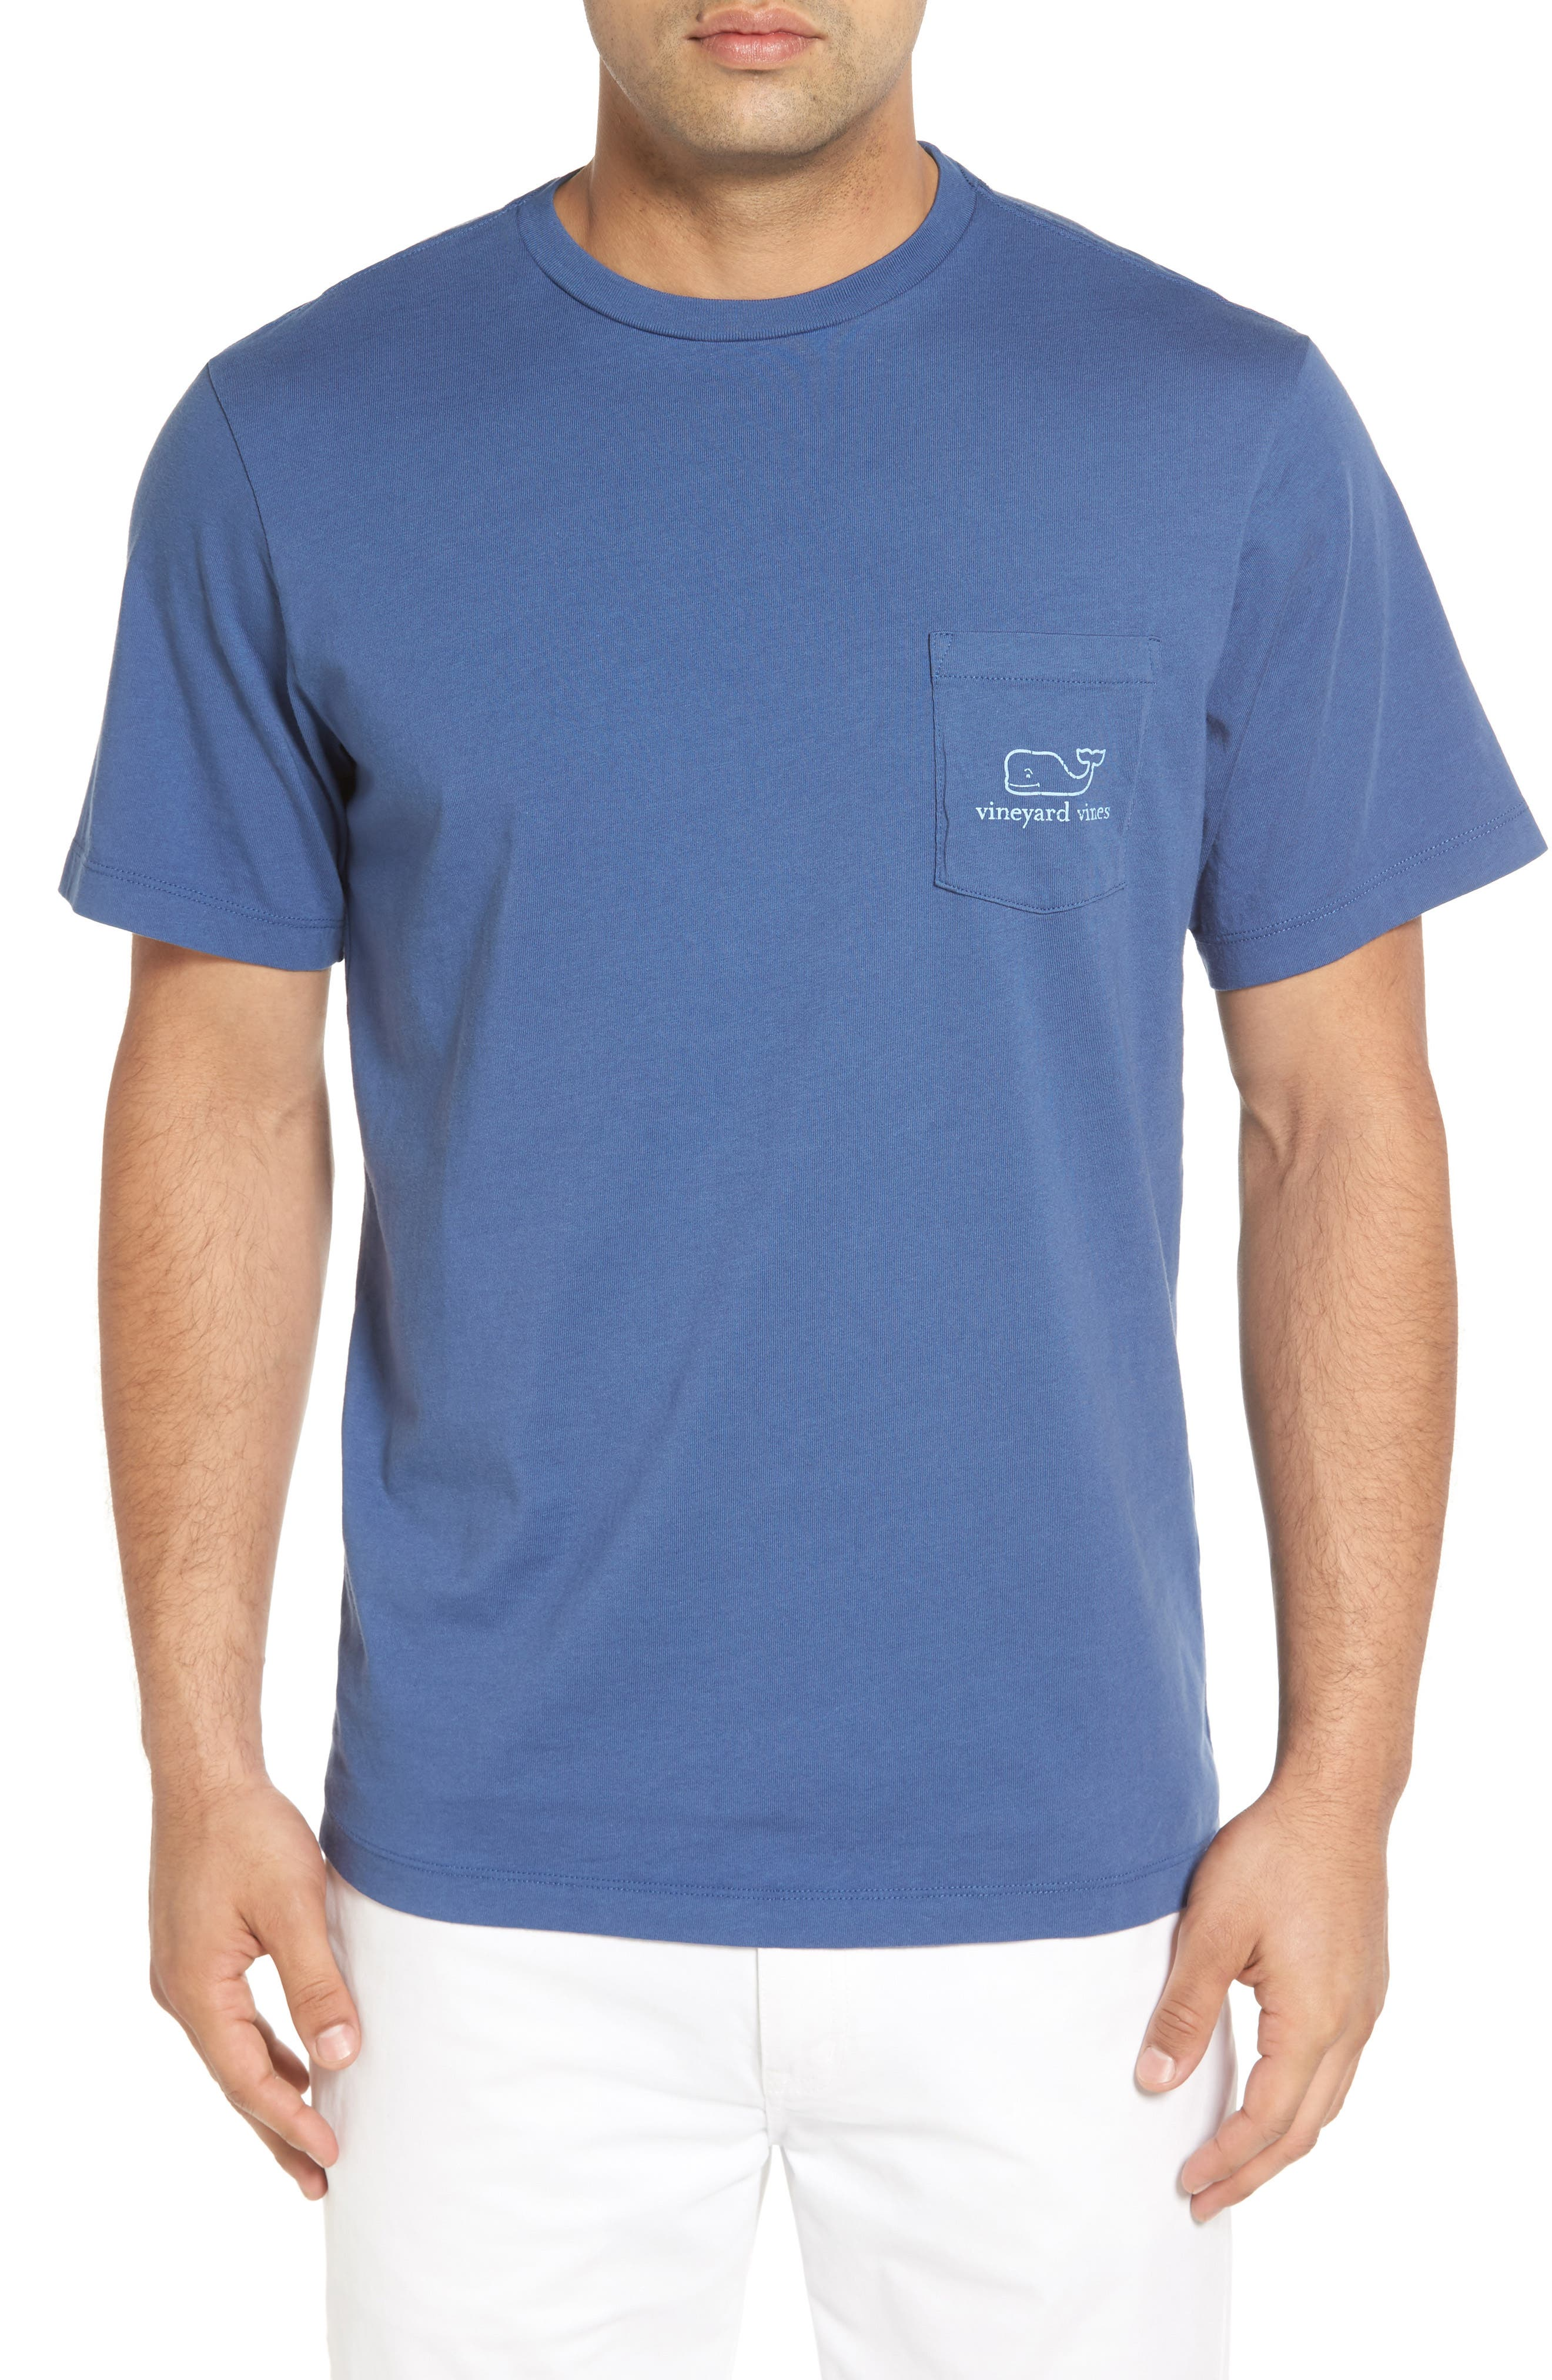 Vineyard Vines T-shirts Vintage Whale Pocket T-Shirt